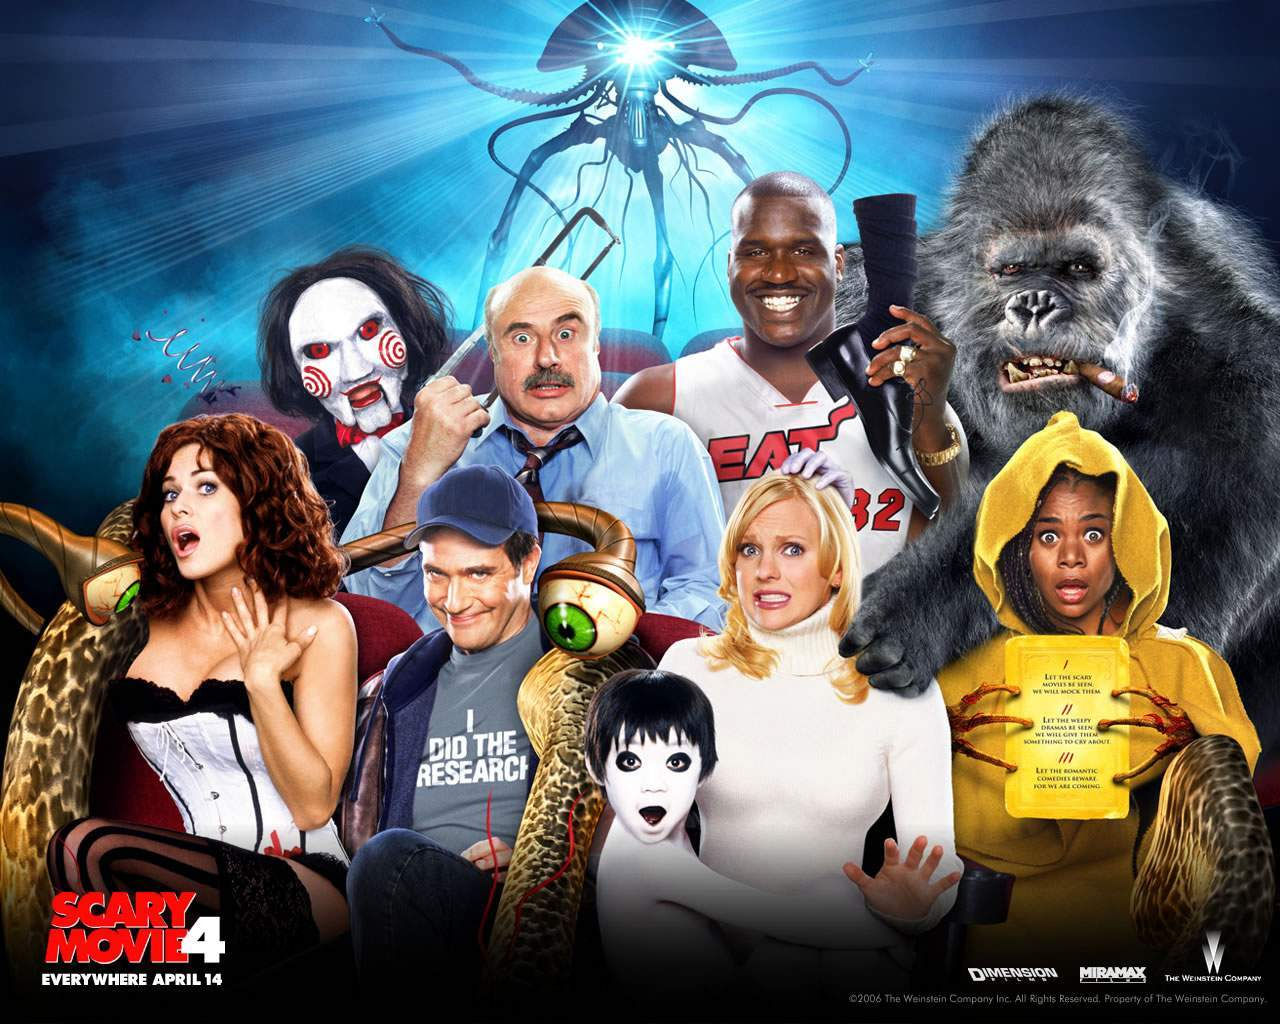 Scary Movie images Wallpaper HD wallpaper and background ...